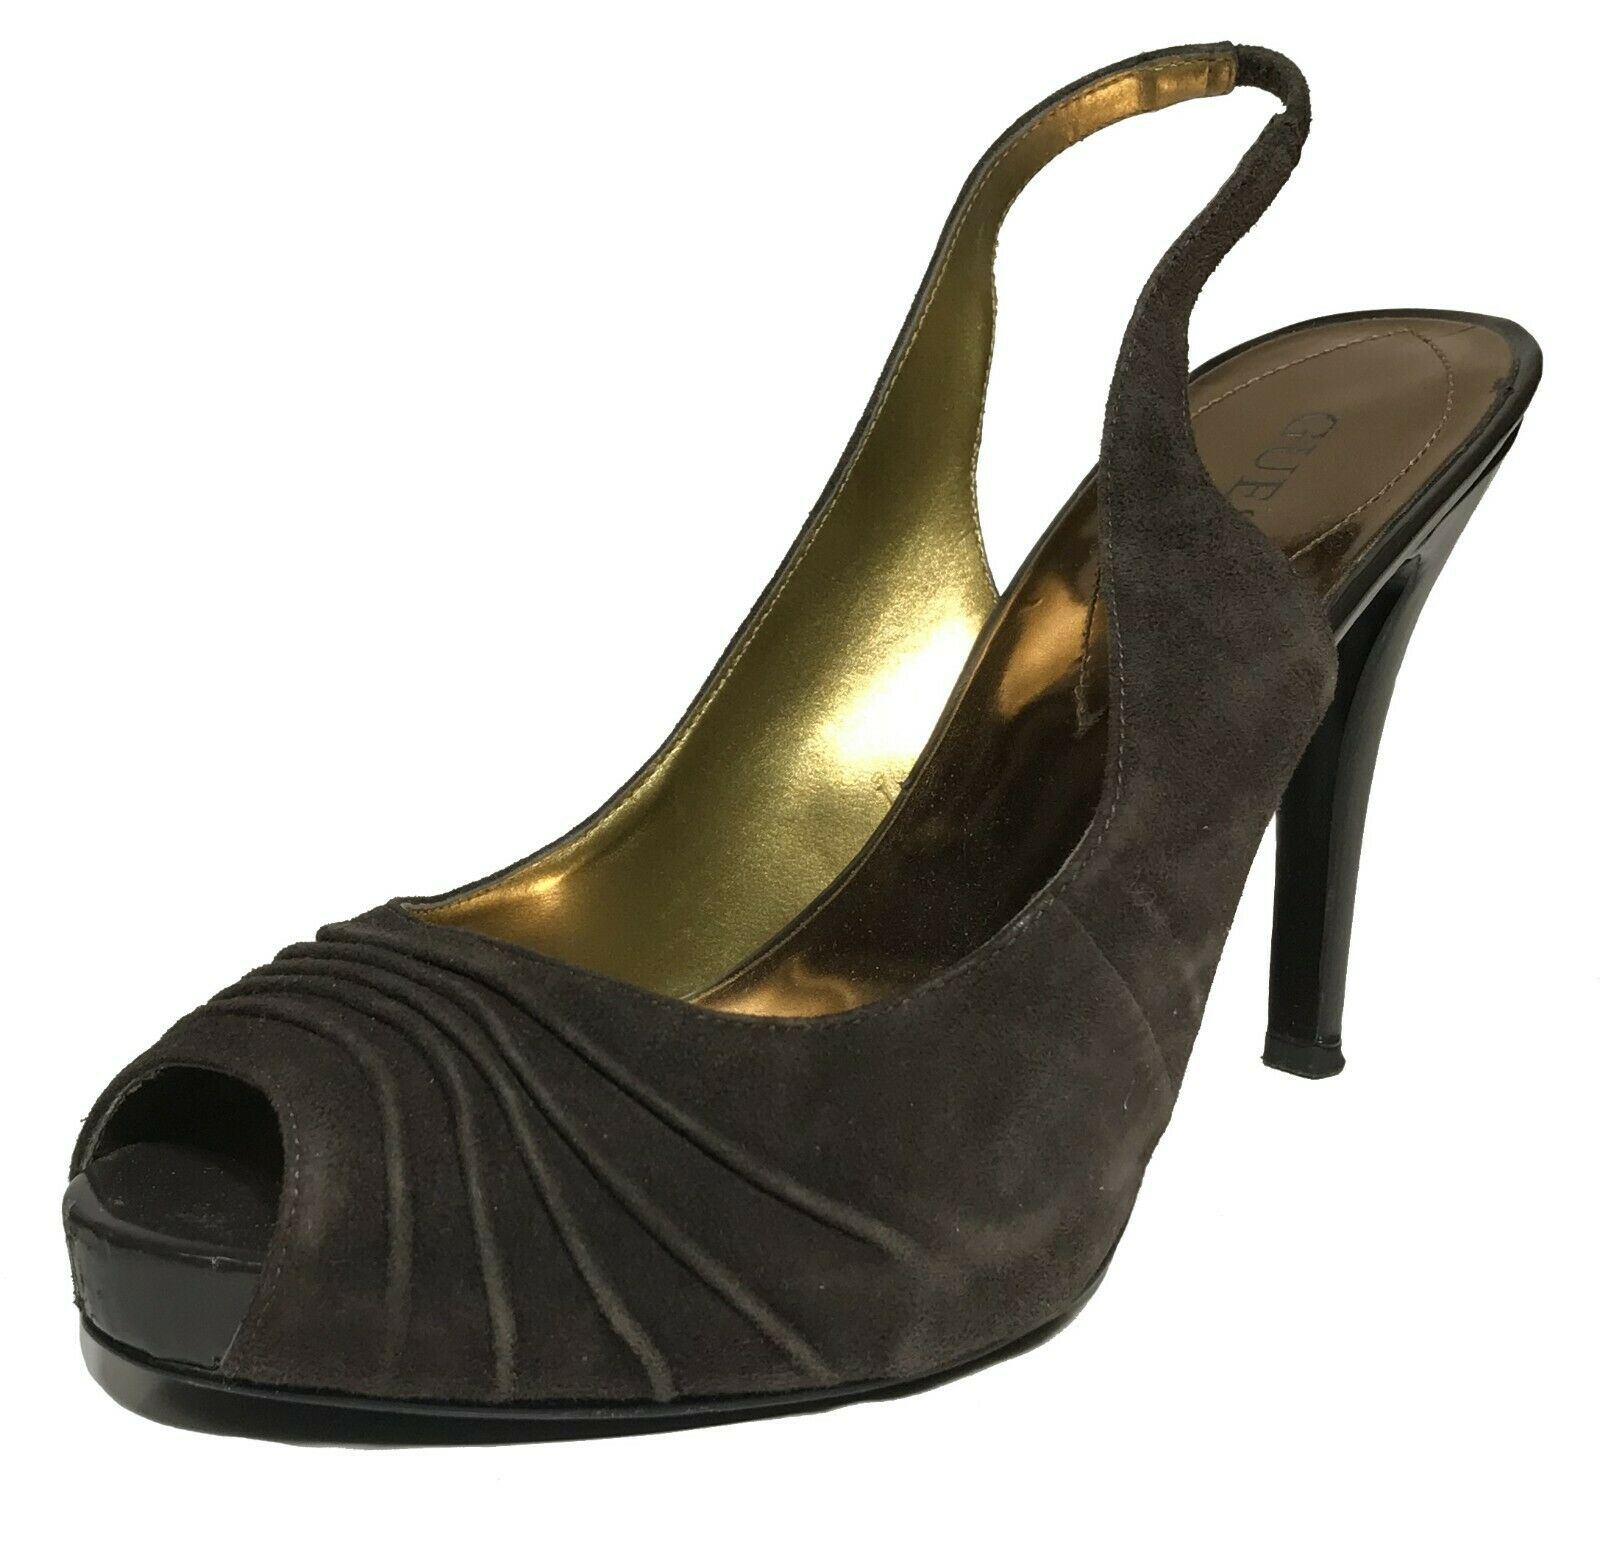 Guess Woman's Pumps, Suede Brown - Size 8